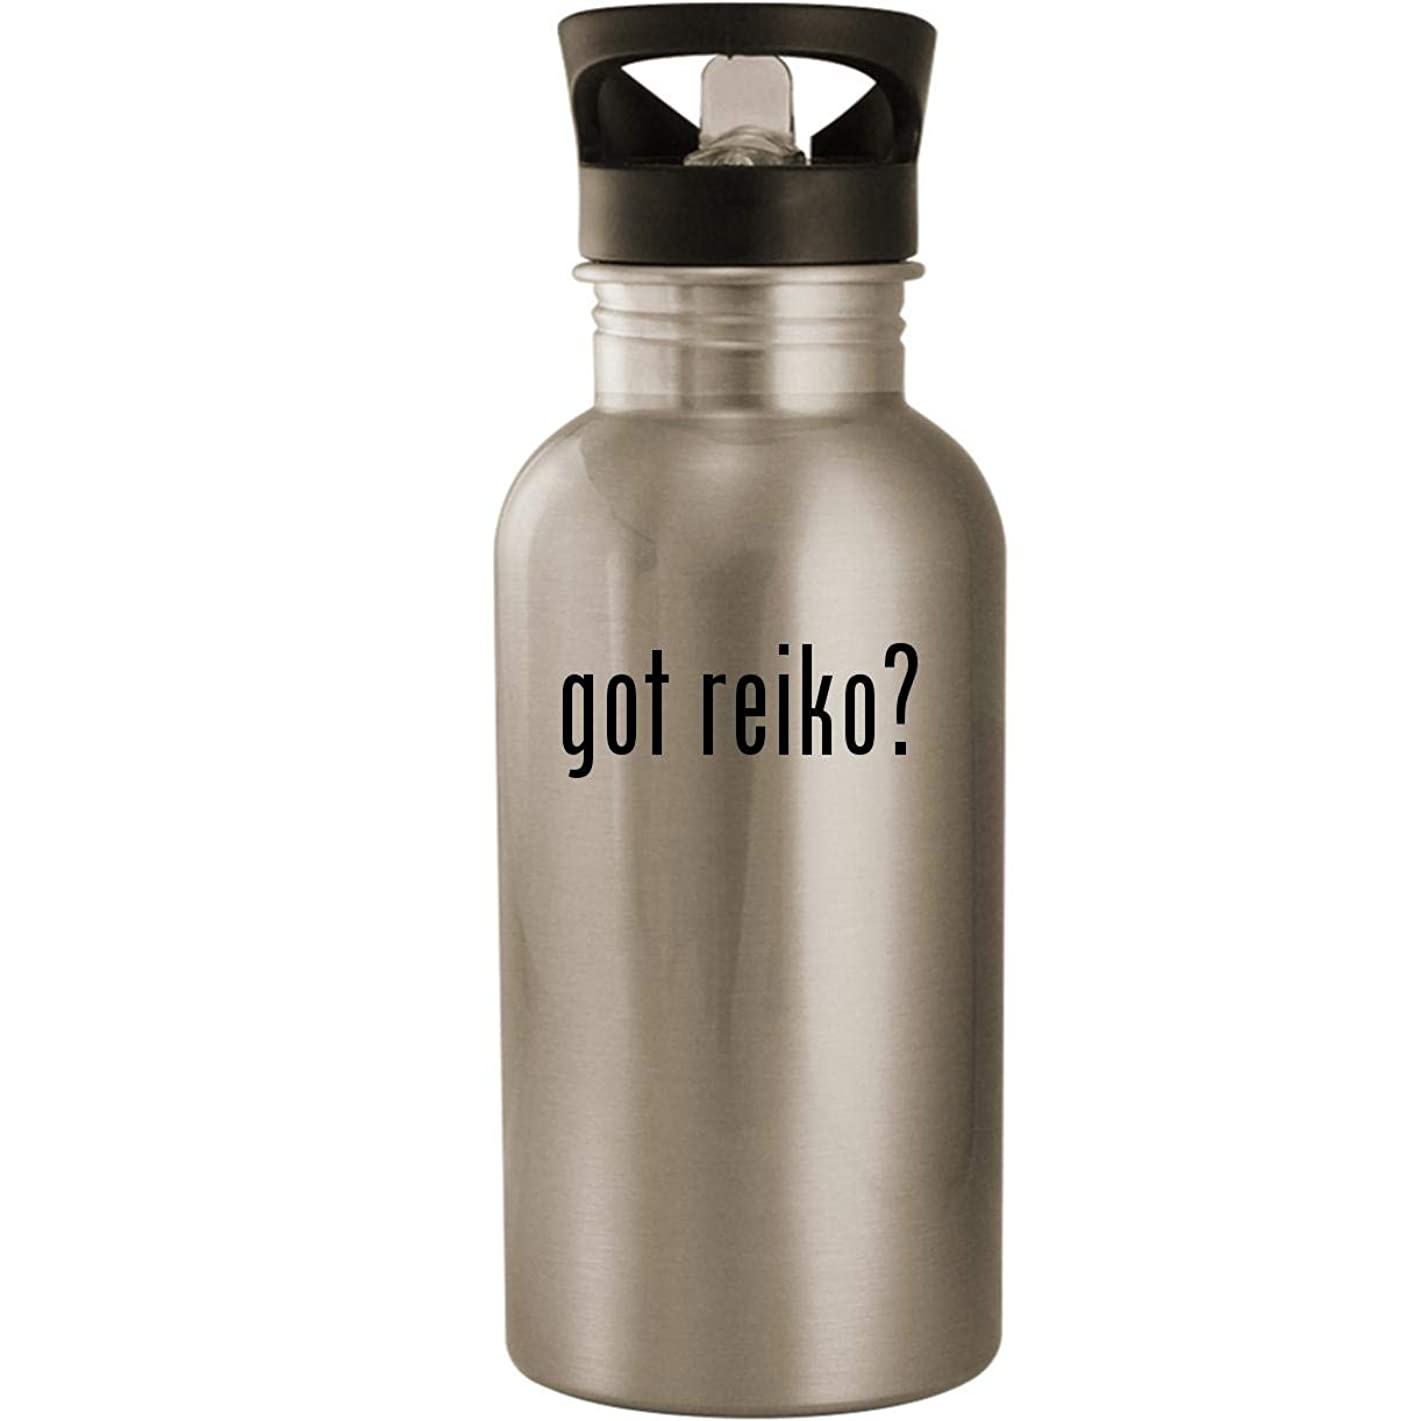 got reiko? - Stainless Steel 20oz Road Ready Water Bottle, Silver